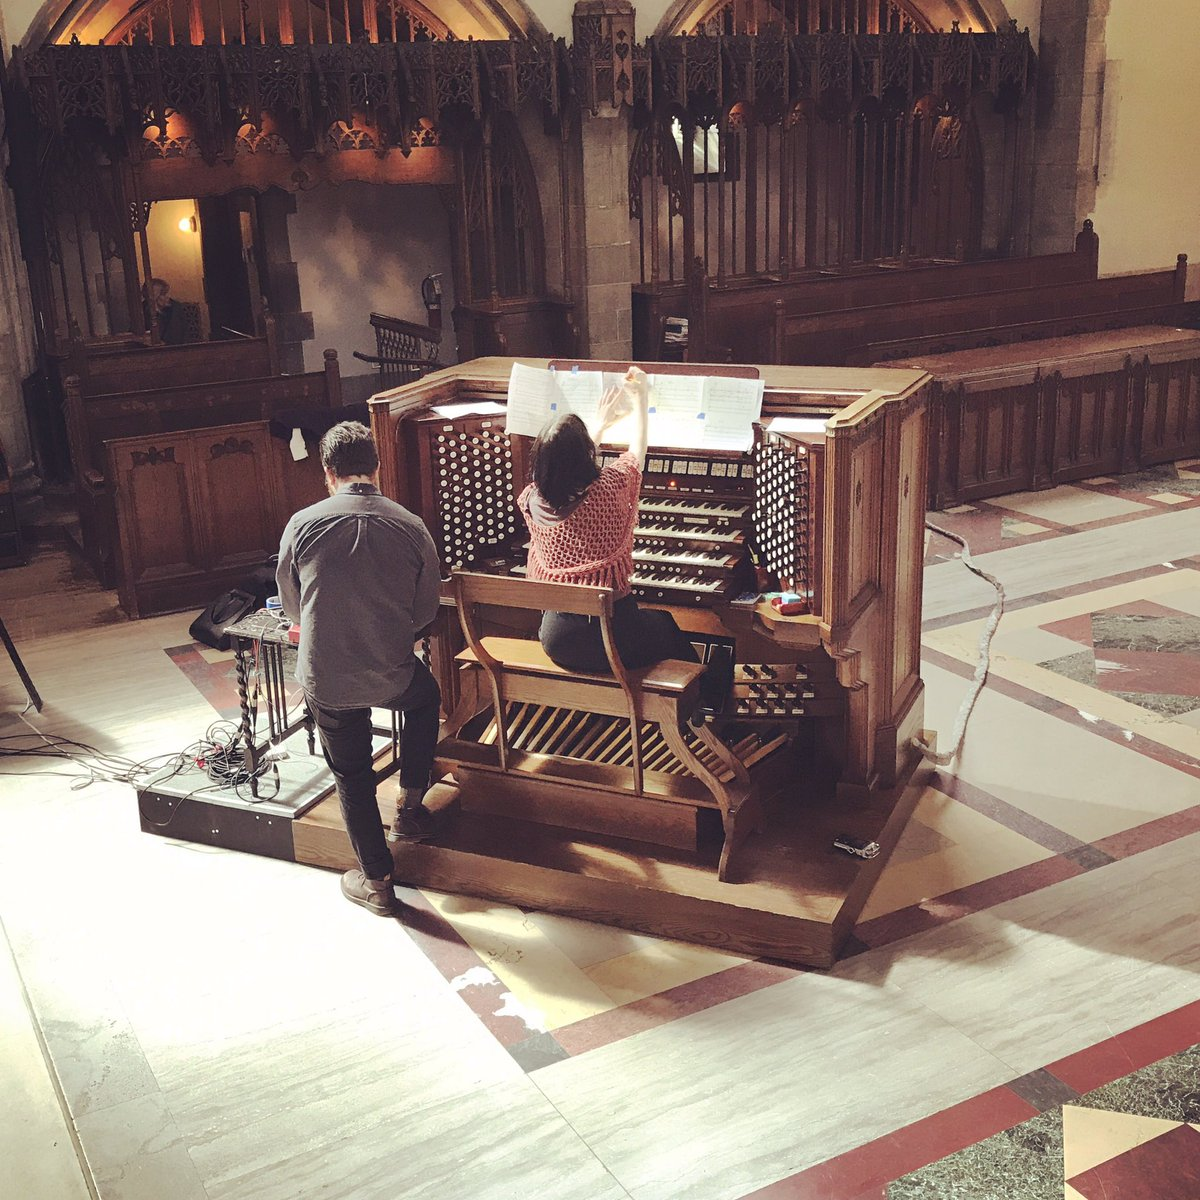 Setting up with Alex Inglesian for  132 Ranks  concert for Pipe Organ and multi-speaker array at Rockefeller Memorial Chapel, April 21st, 2017. Photo courtesy of Andrew Fenchel/LAMPO.